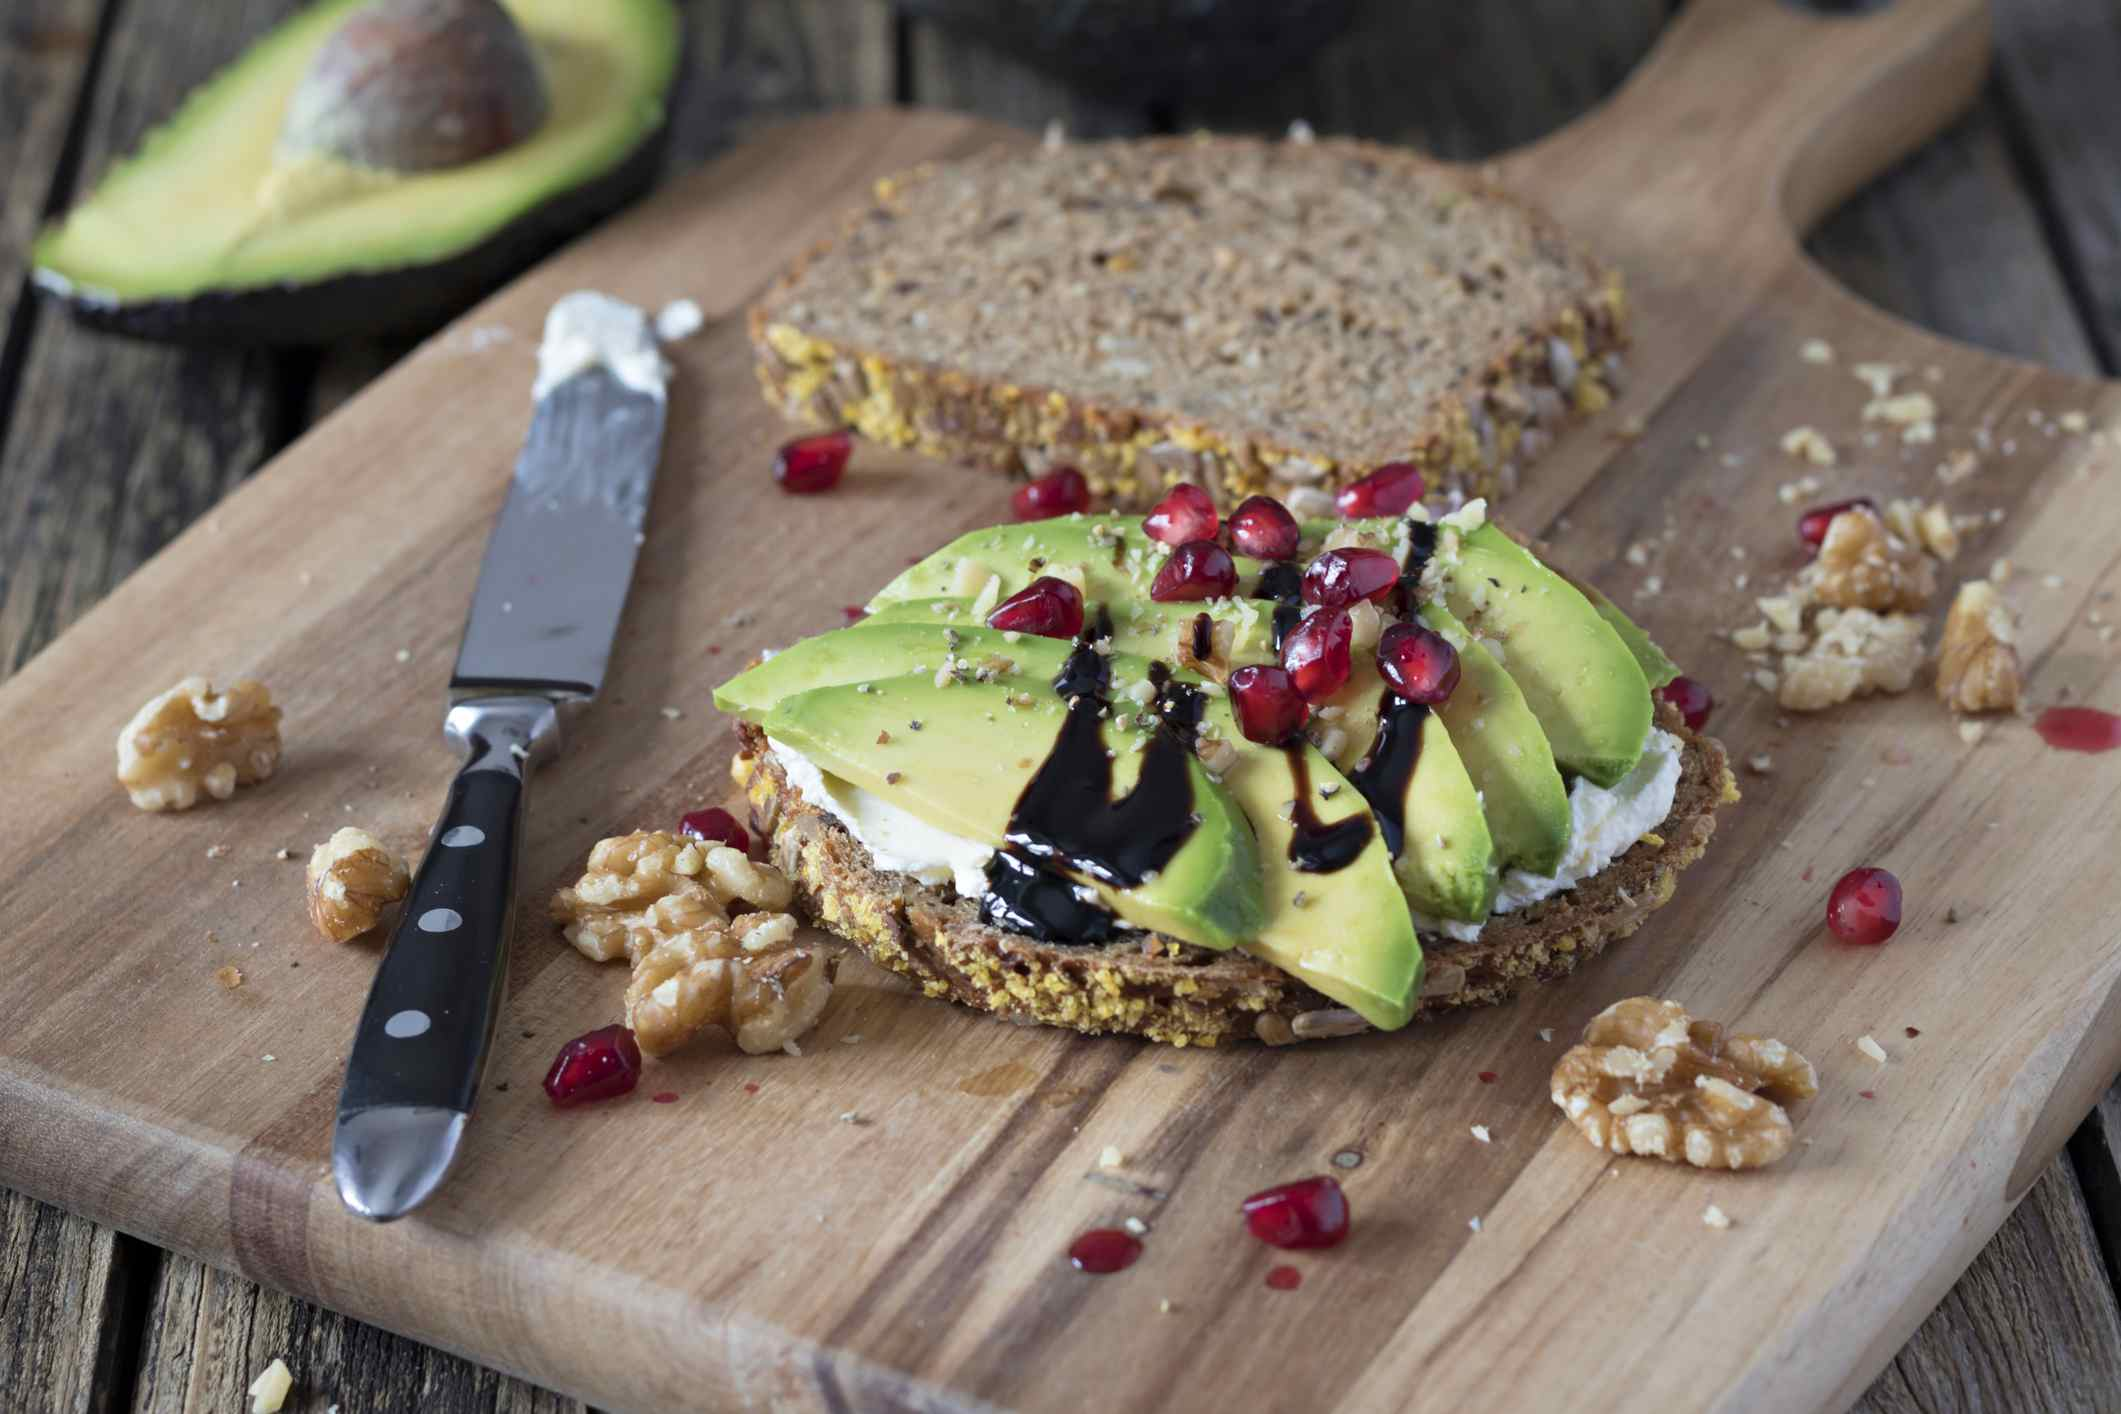 A sandwich board of avocado toast with pomegranate seeds